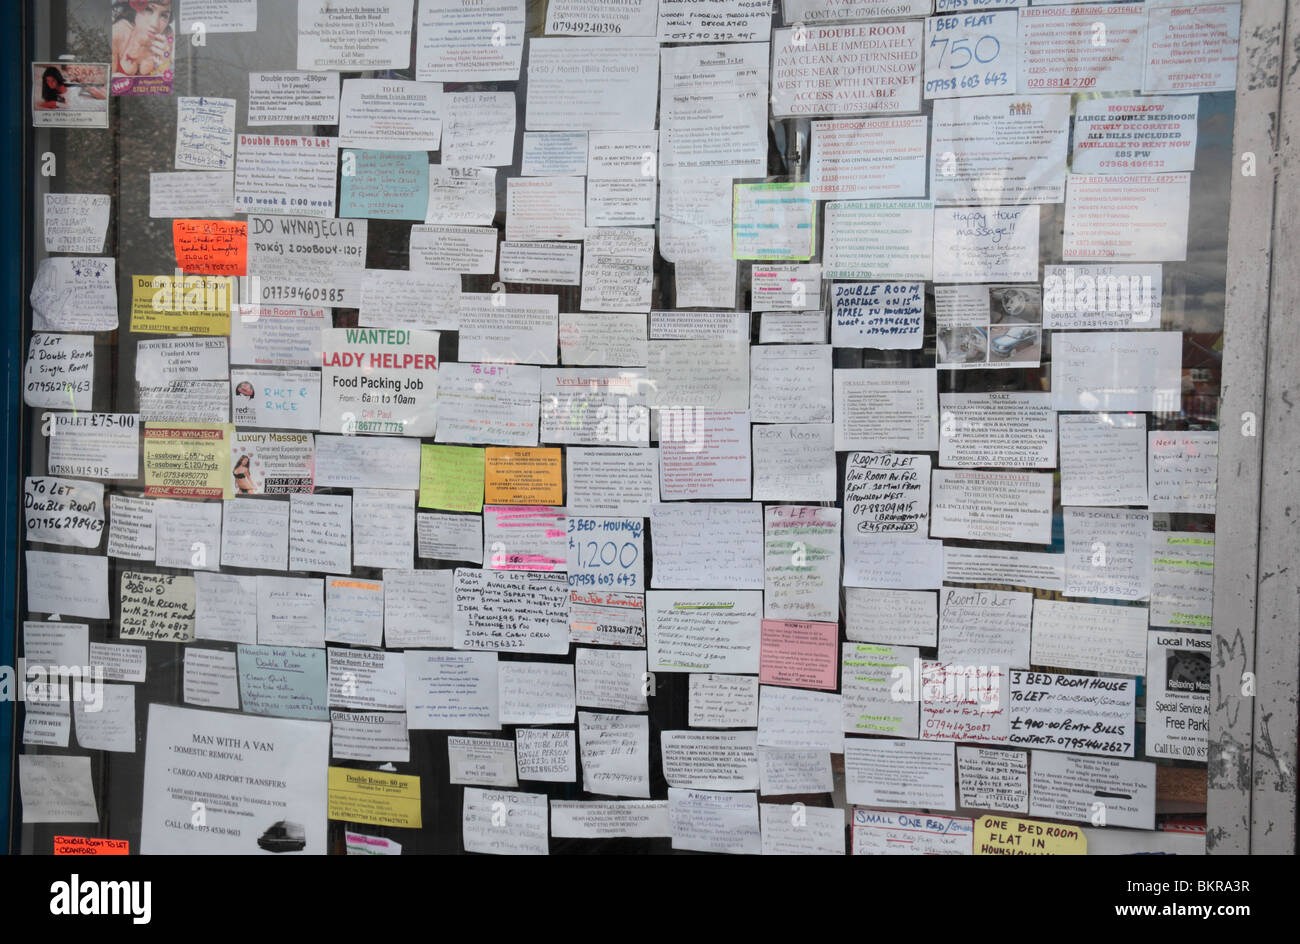 A board full of small ads in a newsagent shop window in Hounslow West, Middx, UK. - Stock Image